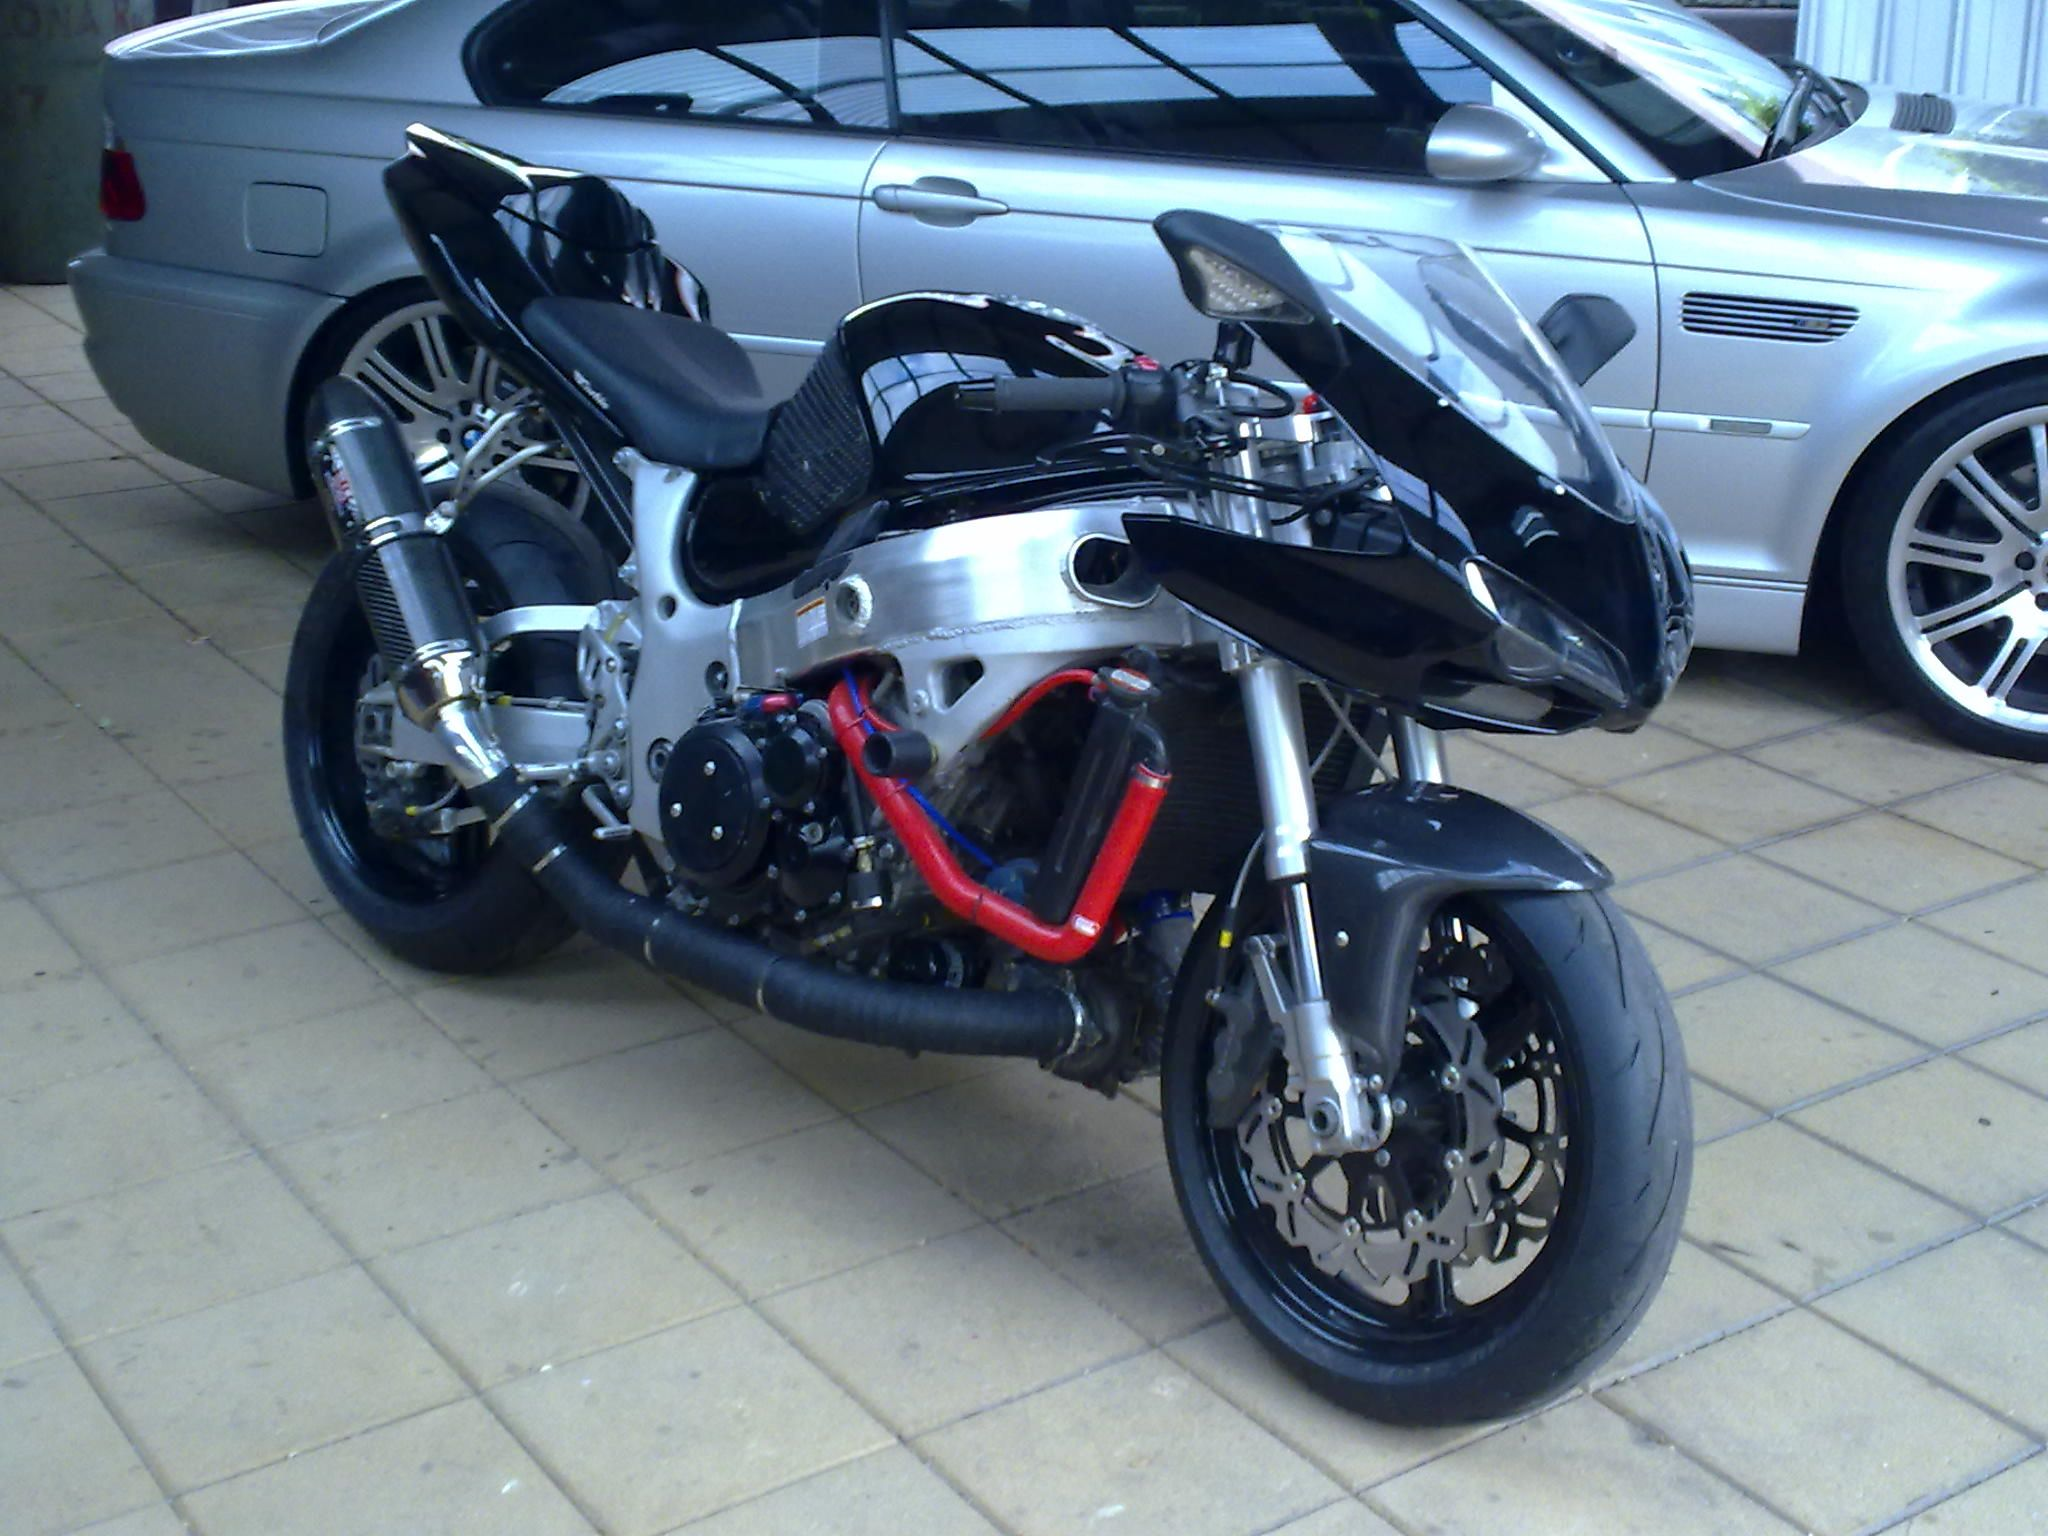 Images of Gsxr Streetfighter Conversion - #rock-cafe